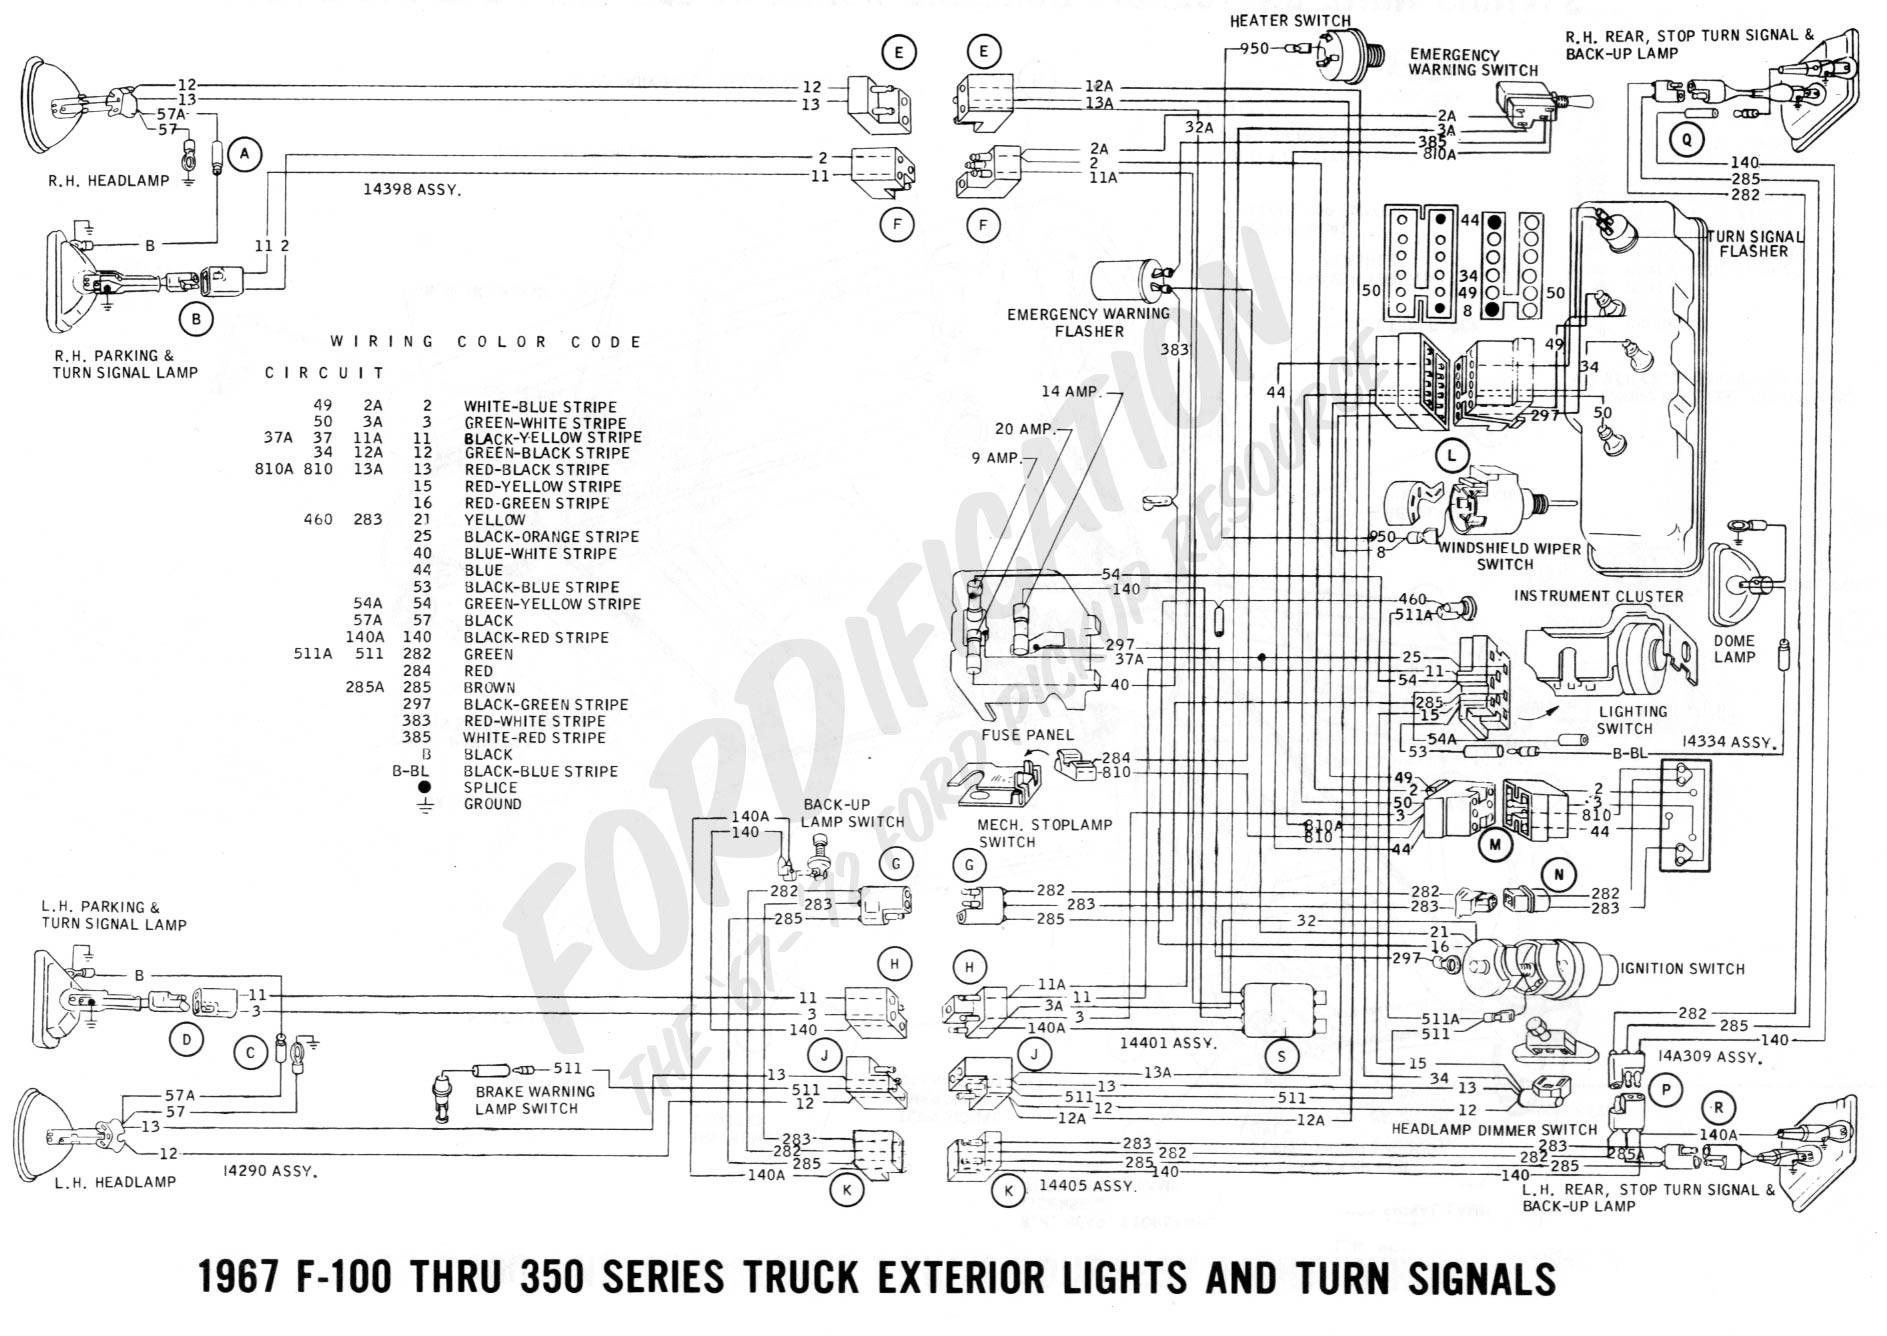 1988 ford f700 wiring schematic wiring diagram1996 ford f700 fuel pump wiring schematic wiring diagram online1996 ford f700 wiring diagram wiring library